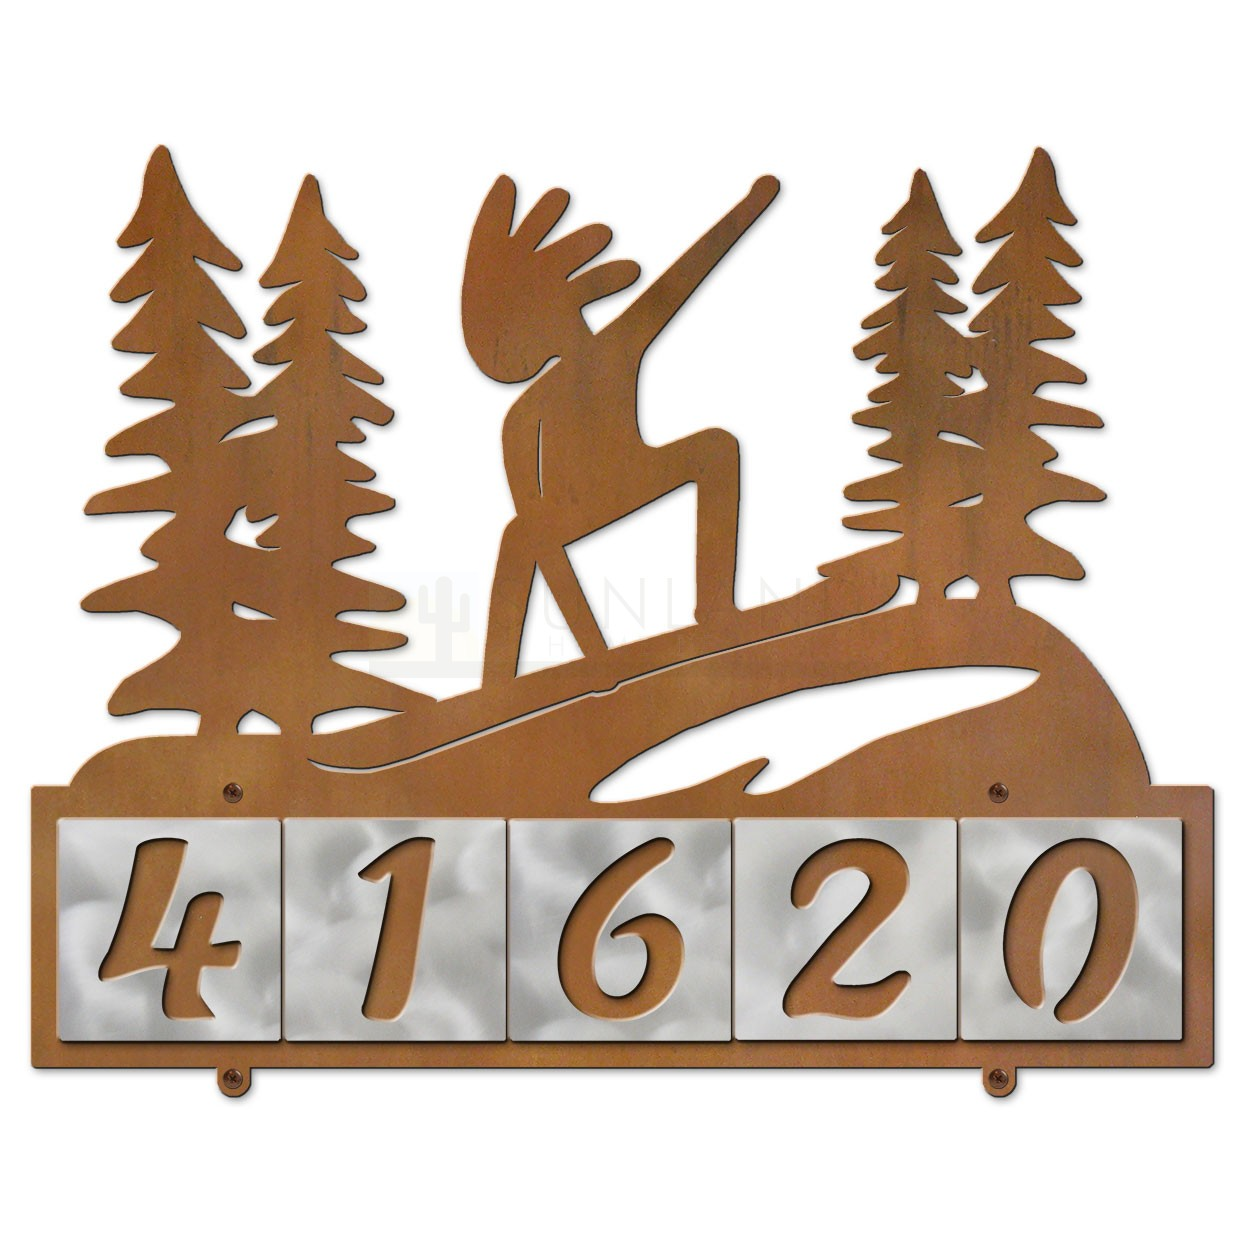 Arizona sign sled clipart clipart images gallery for free.